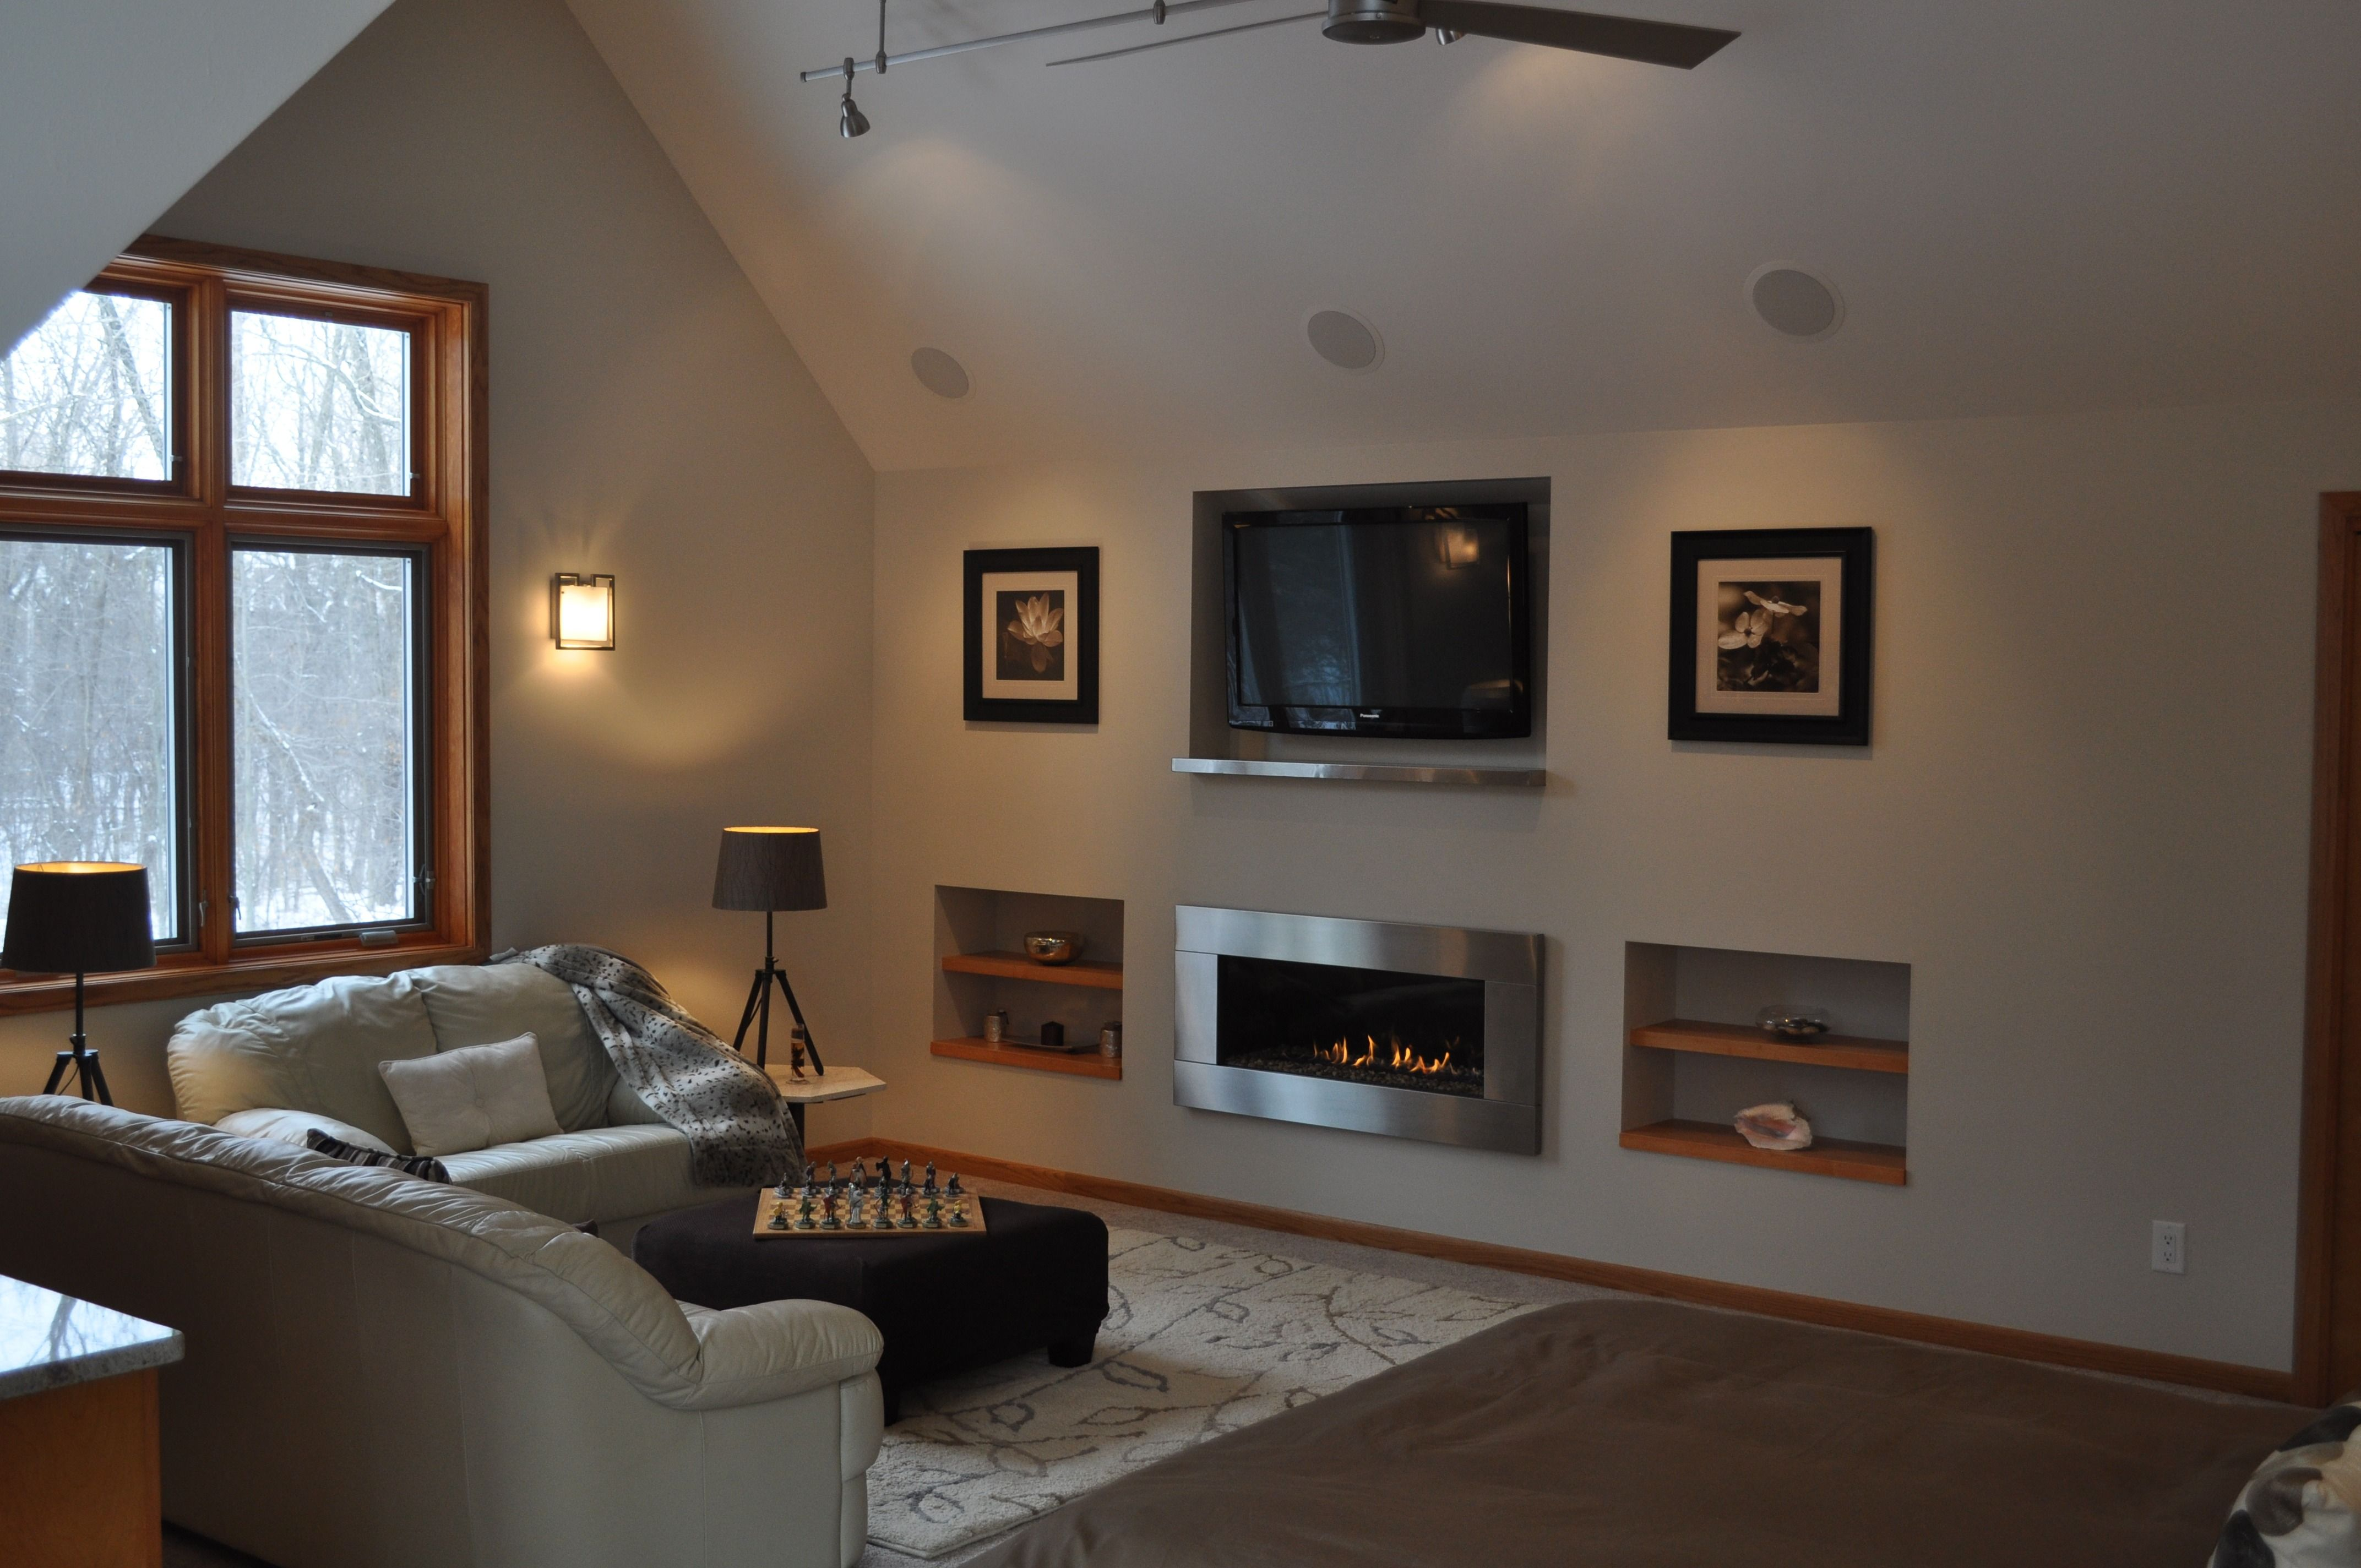 speakers in wall. surround sound speakers in wall round designs